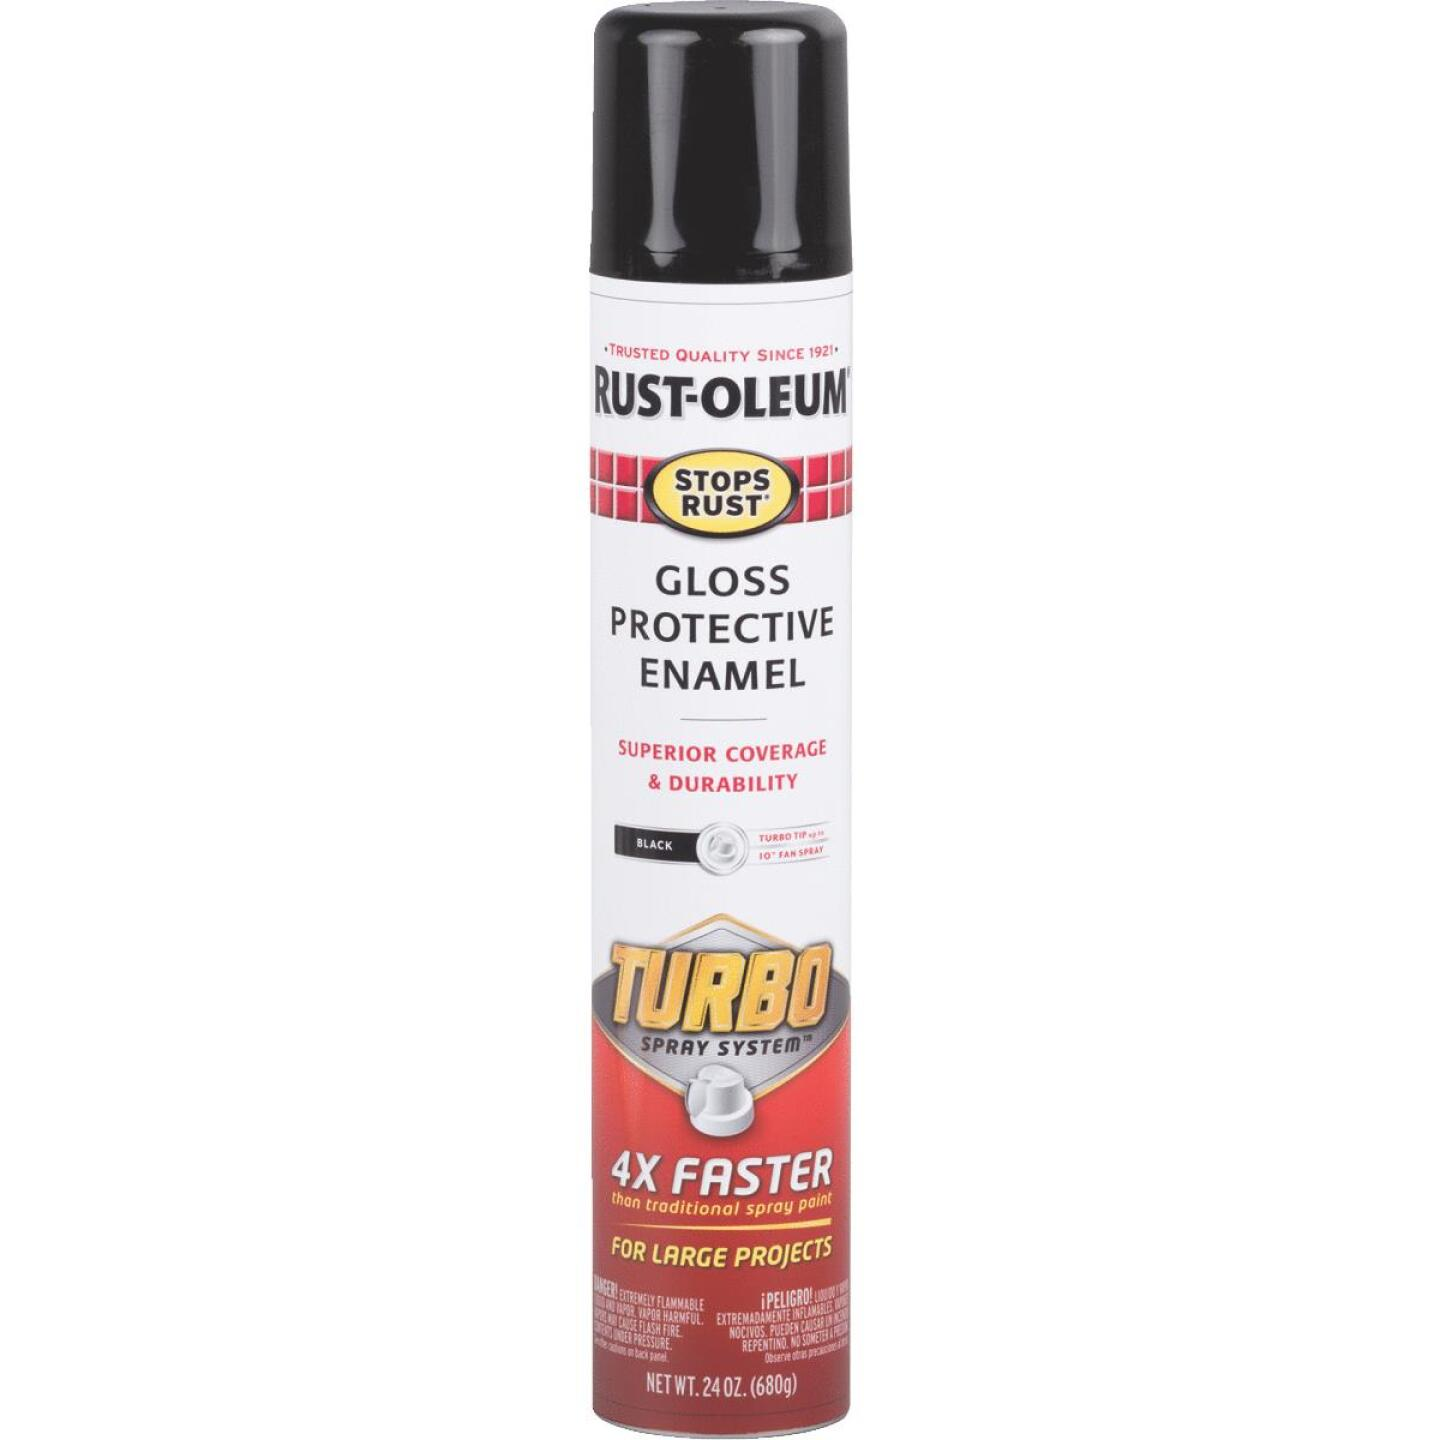 Rust-Oleum Stops Rust 24 Oz. Black Turbo Spray Paint Image 1